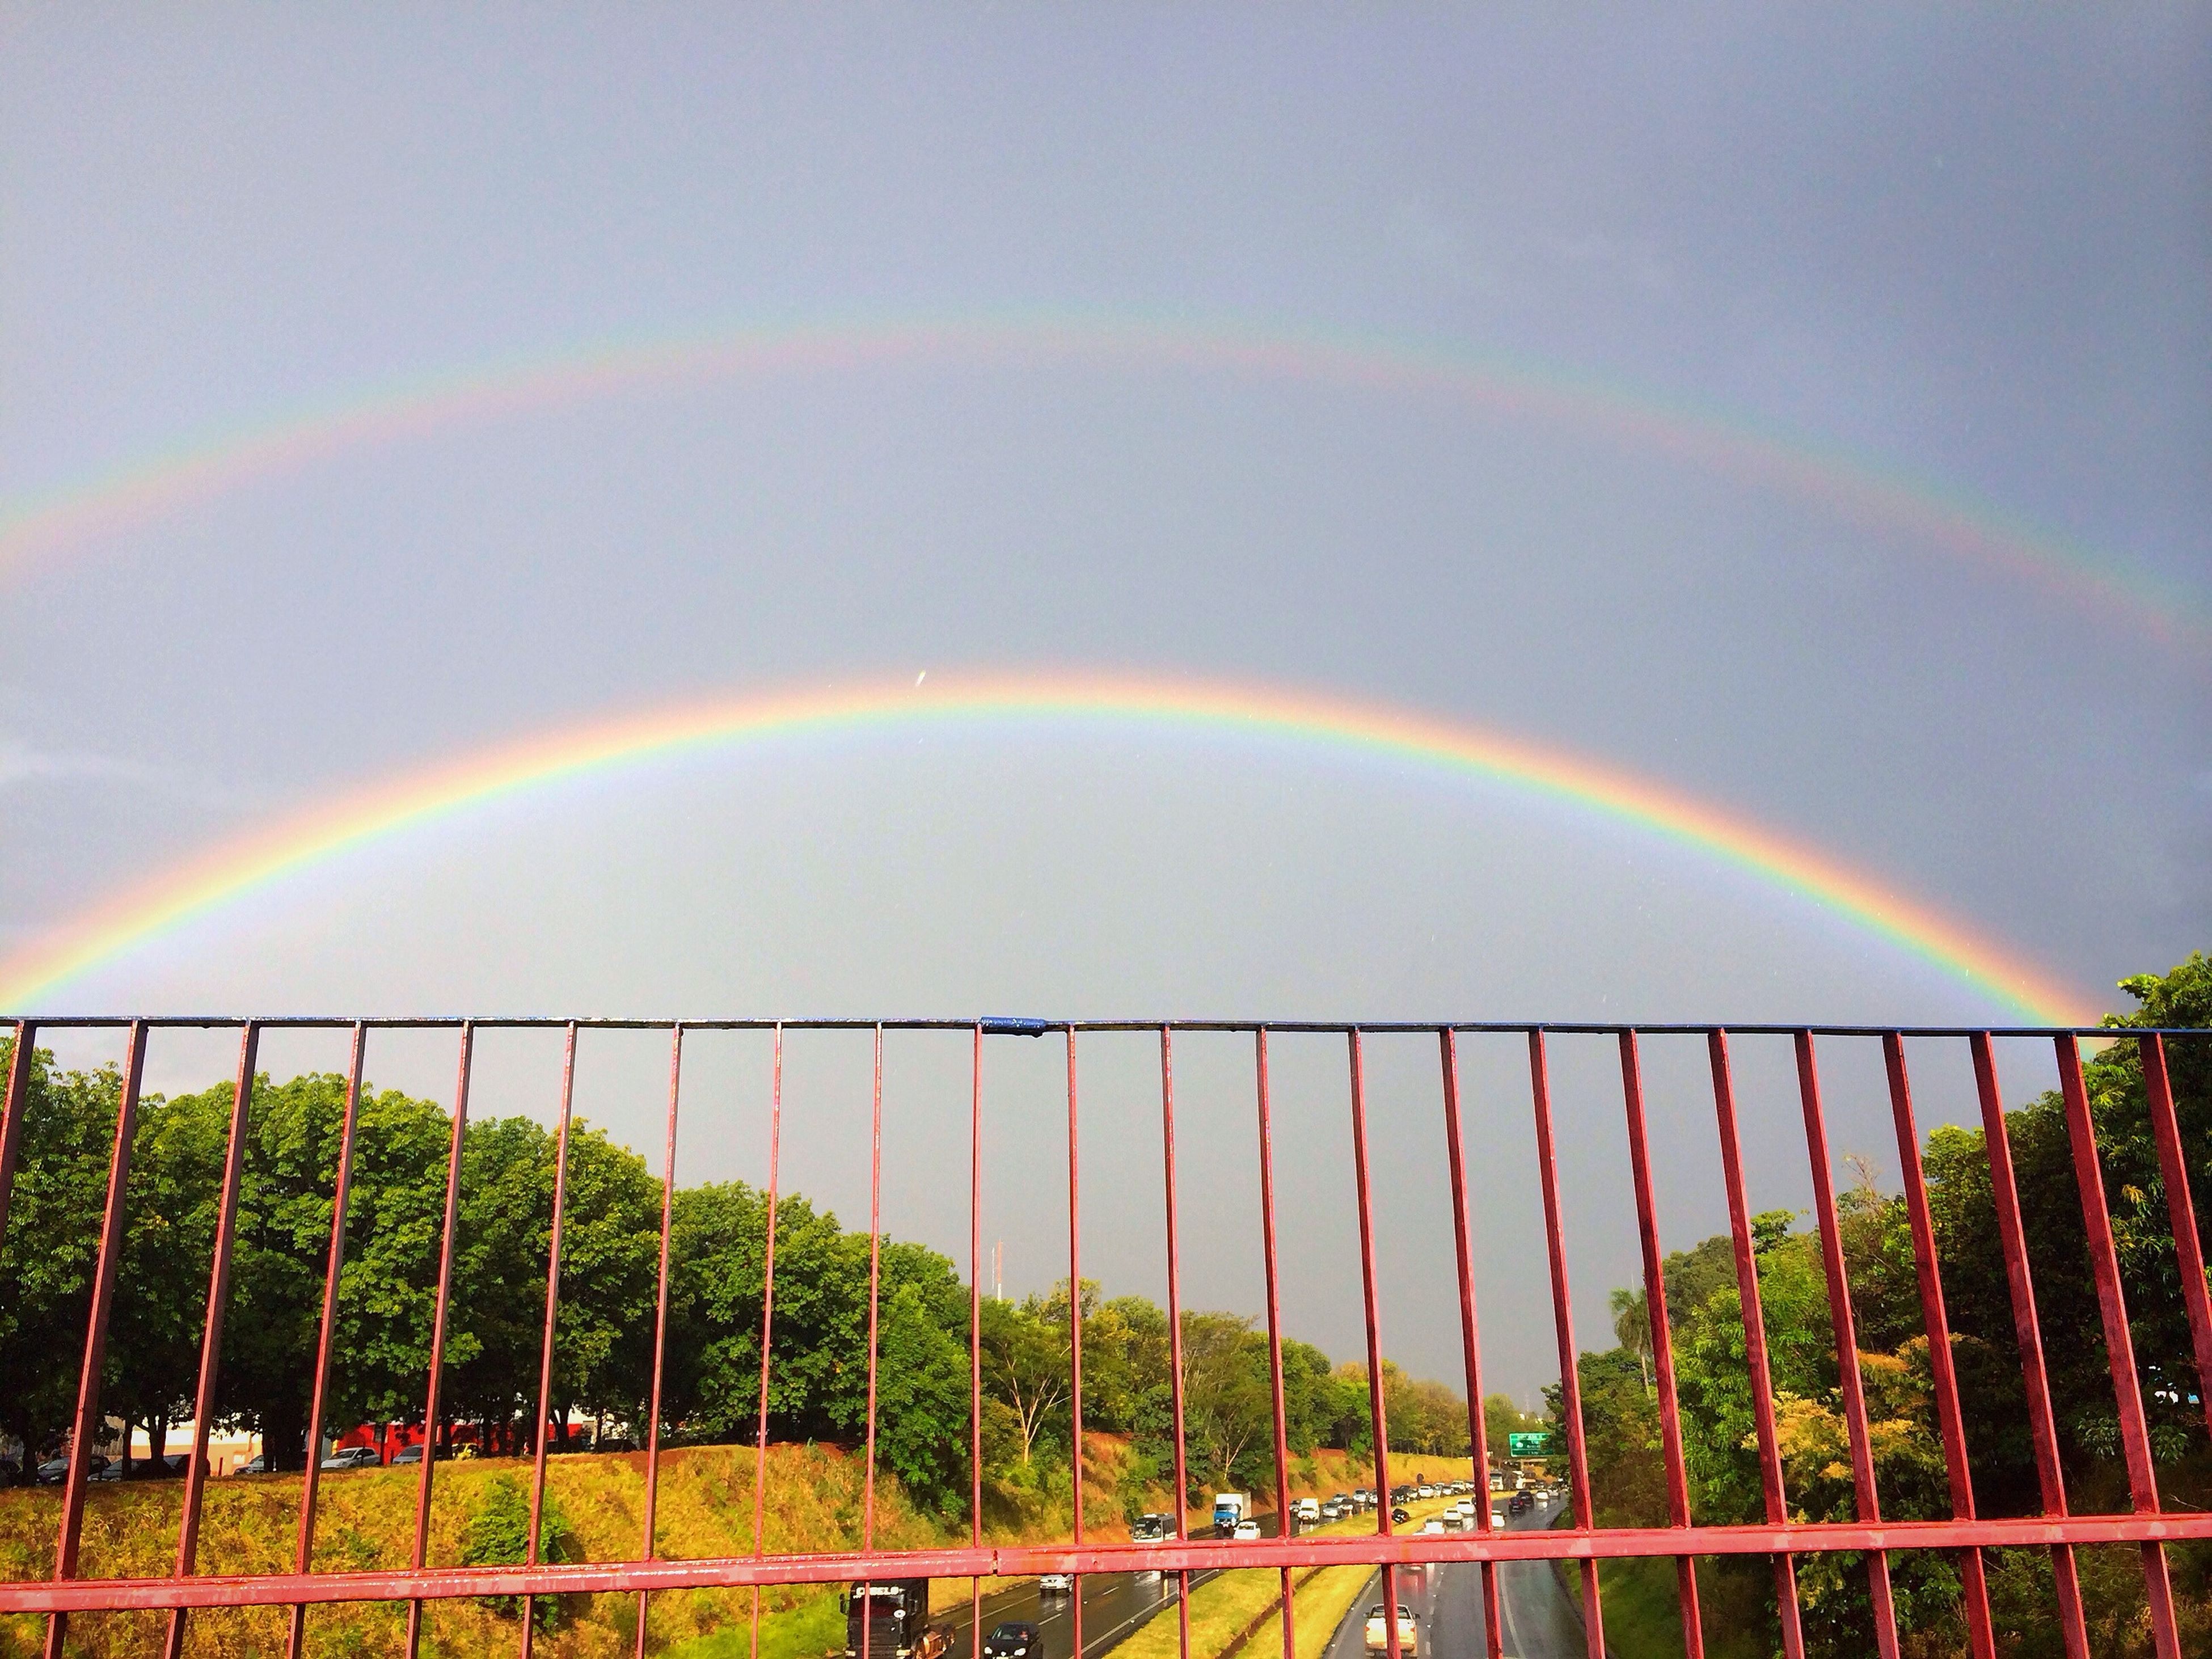 rainbow, sky, connection, multi colored, tree, scenics, beauty in nature, nature, tranquility, bridge - man made structure, green color, tranquil scene, cloud - sky, landscape, railing, idyllic, outdoors, growth, no people, bridge